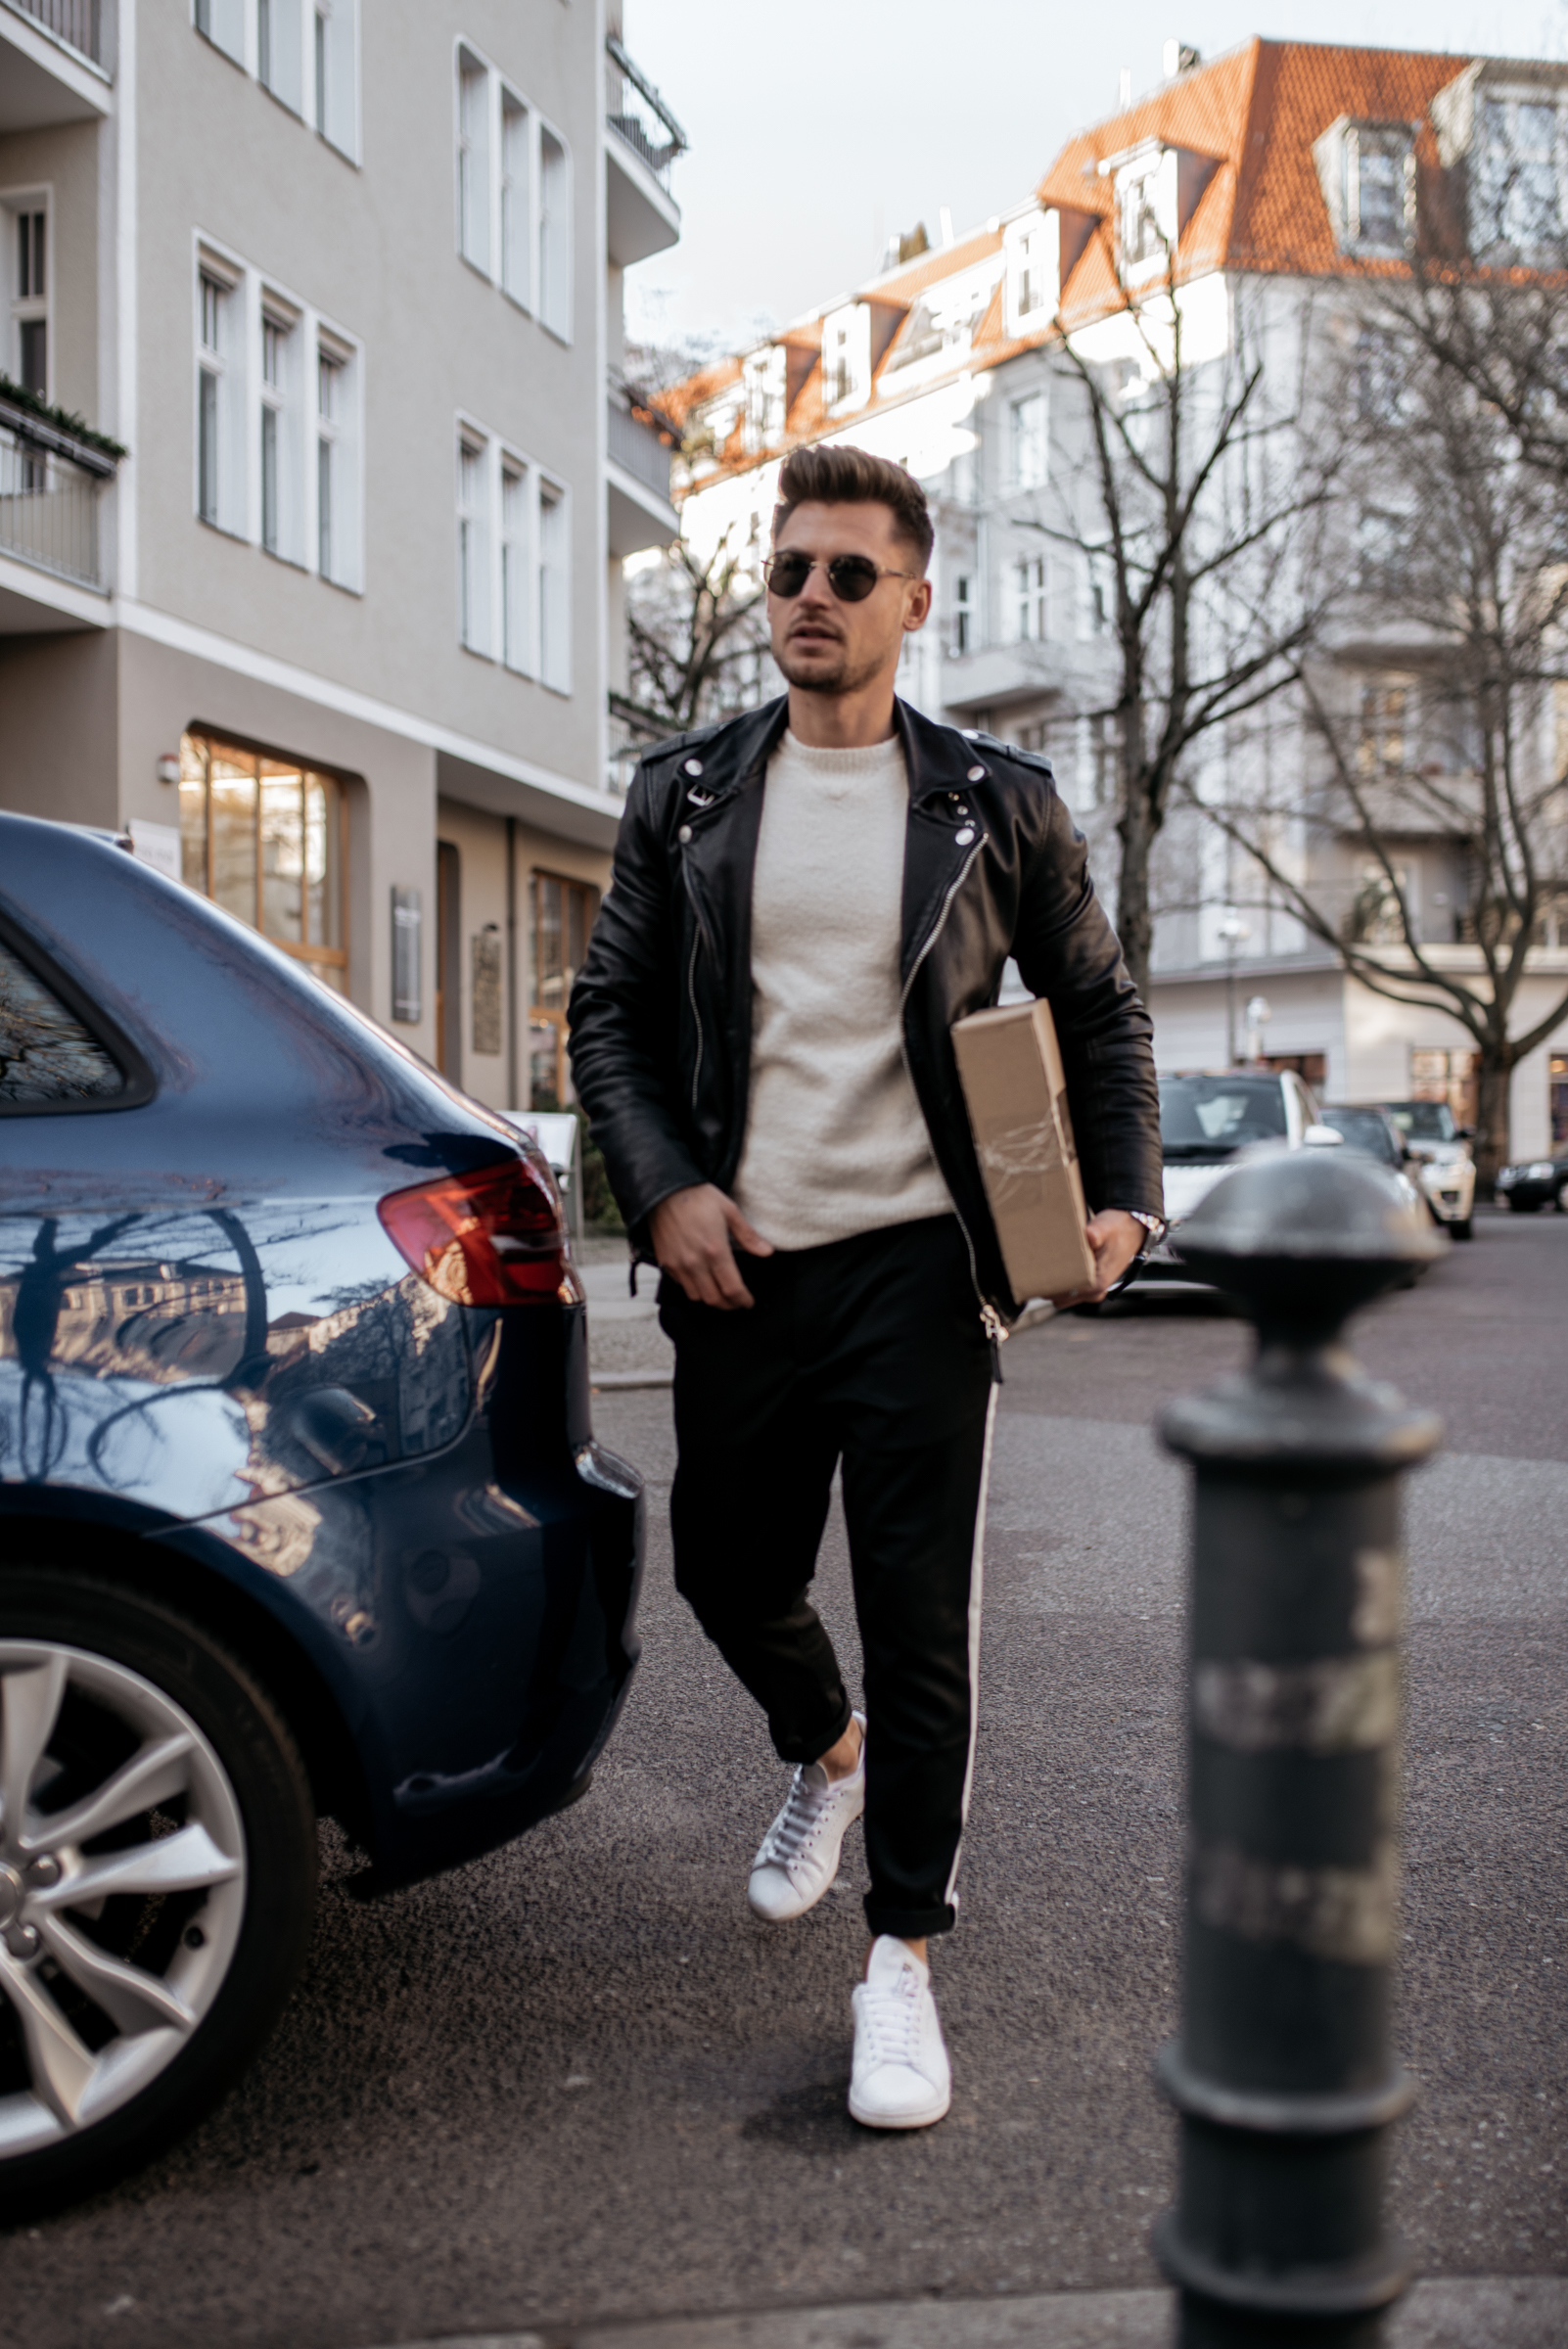 Tommeezjerry-Lifestyleblog-Fashionblog-Maennermodeblog-Maennerblog-Modeblog-VW-Volkswagen-We-Park-We-Deliver-Berlin-Casual-Style-Cafe